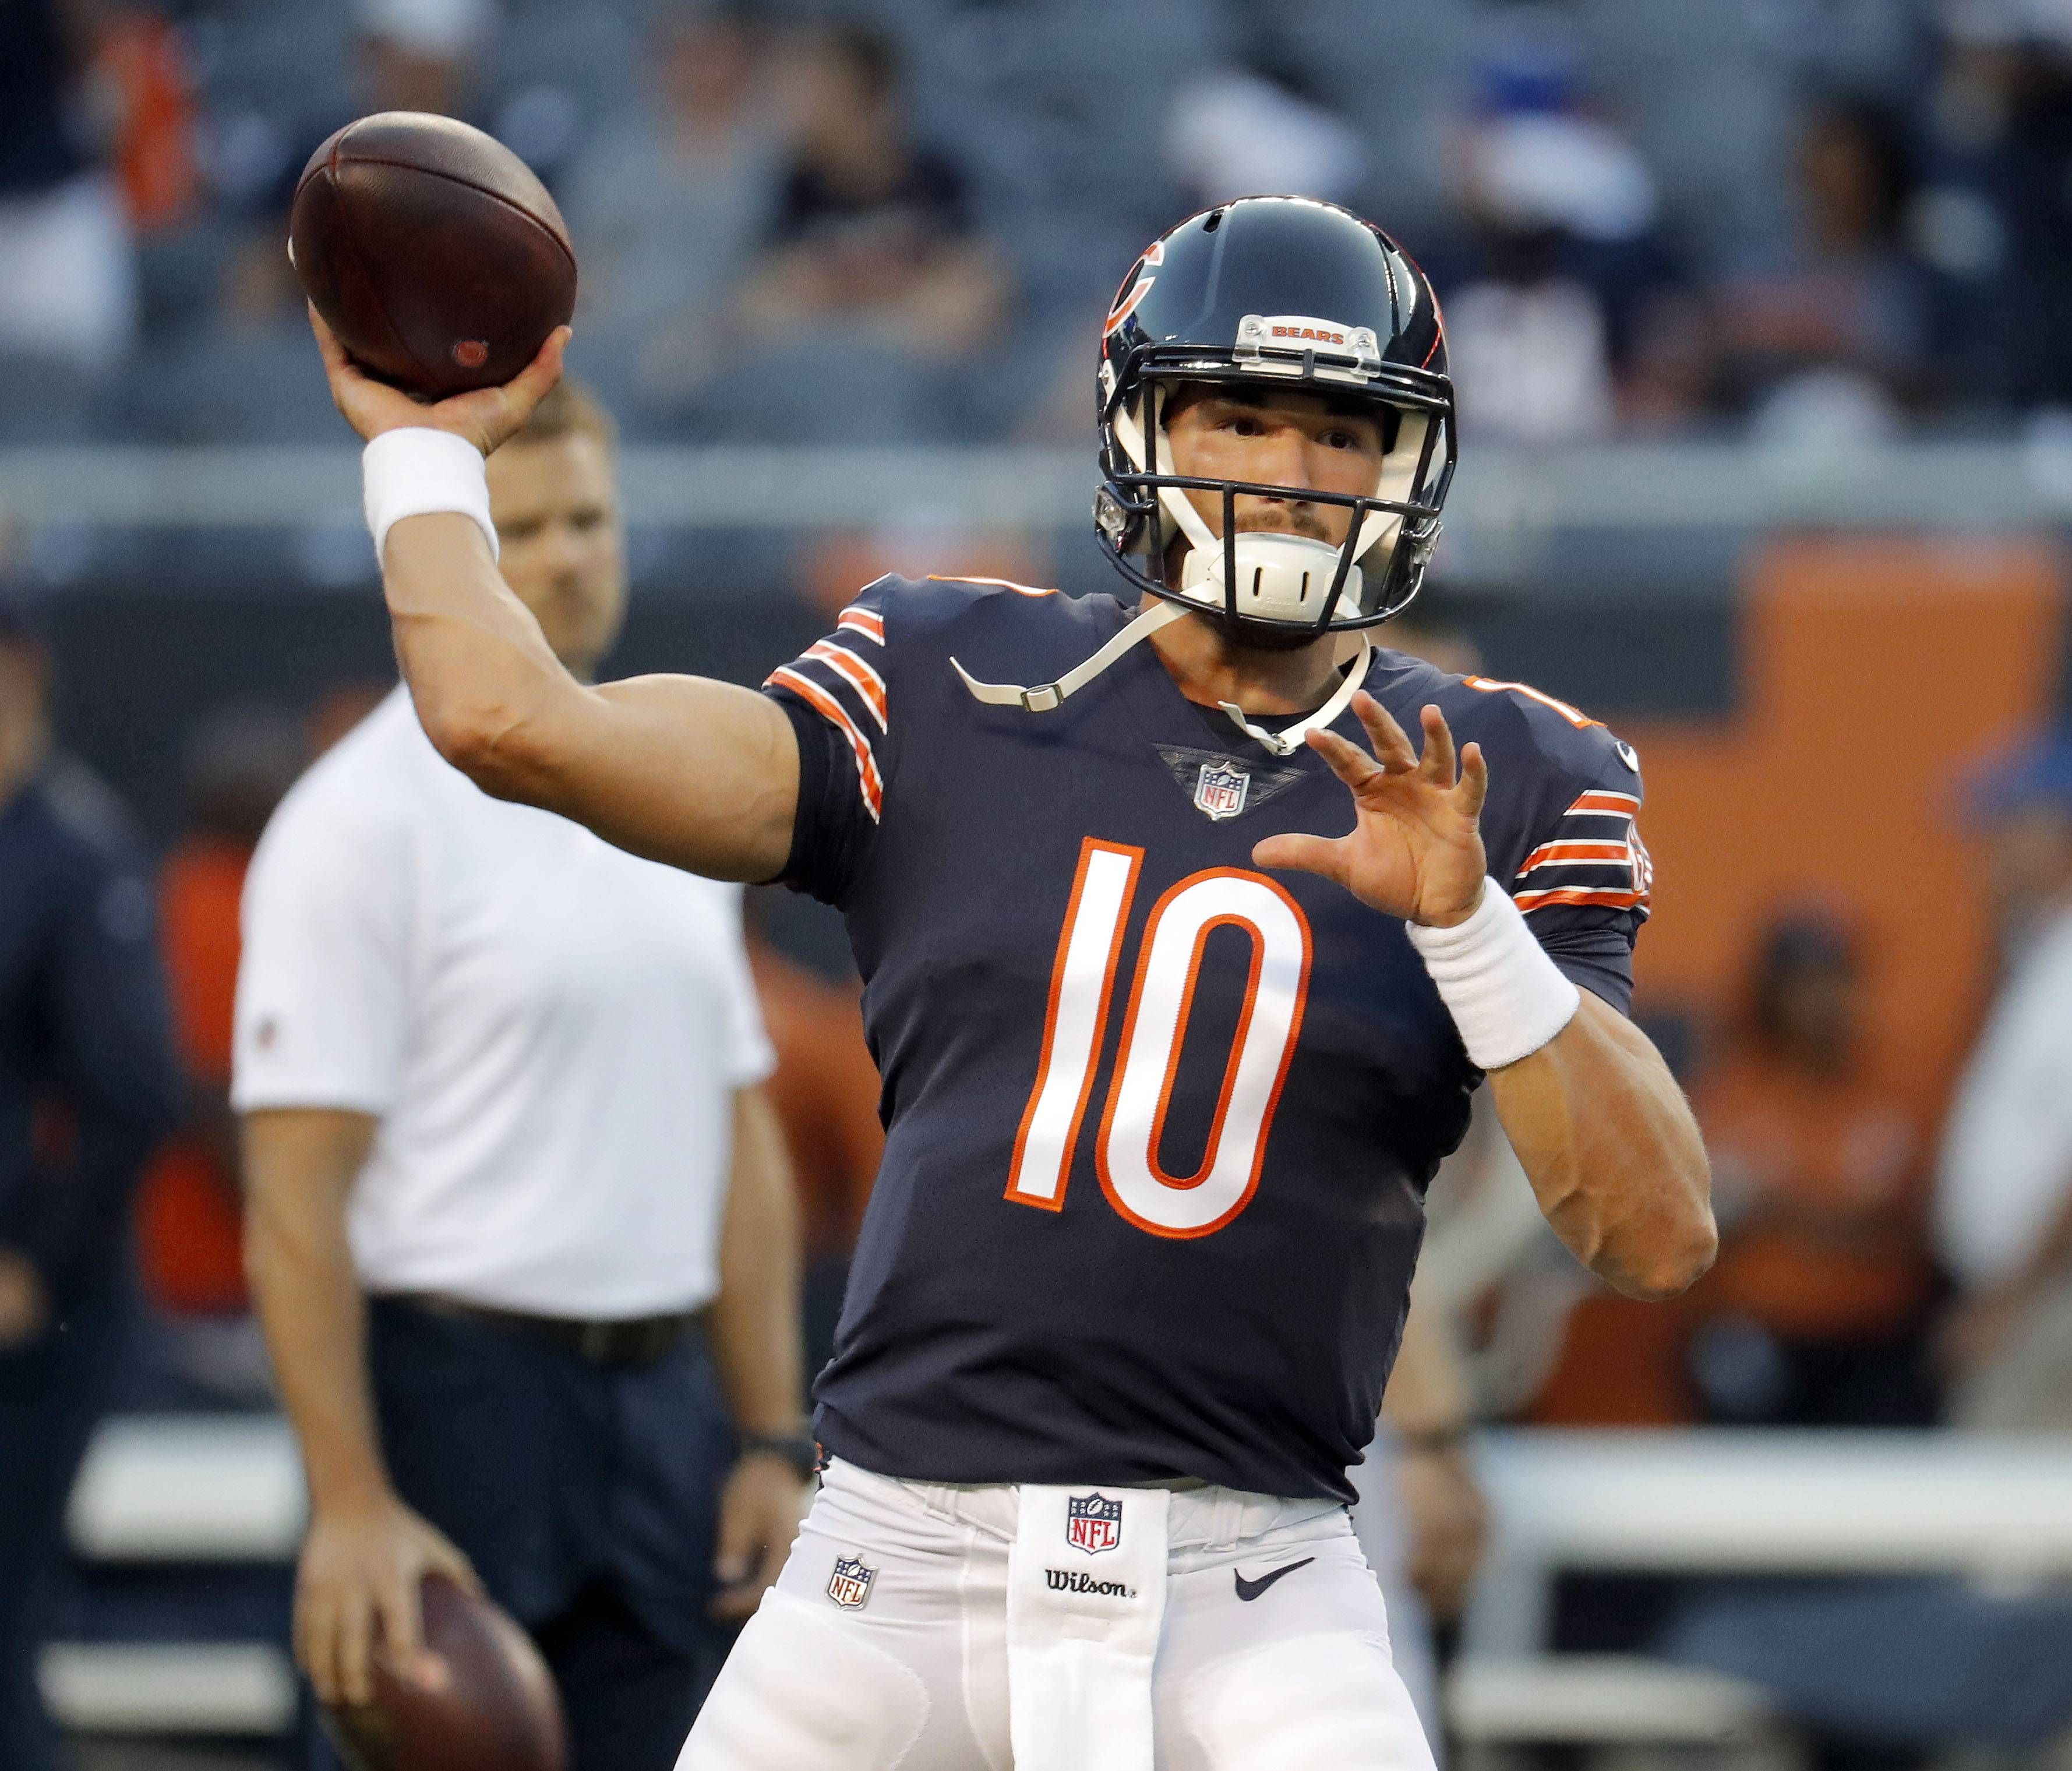 Steve Lundy/slundy@dailyherald.comChicago Bears quarterback Mitchell Trubisky warms up during the Chicago Bears vs the Seattle Seahawks game Monday September 17, 2018 at Soldier Field in Chicago.